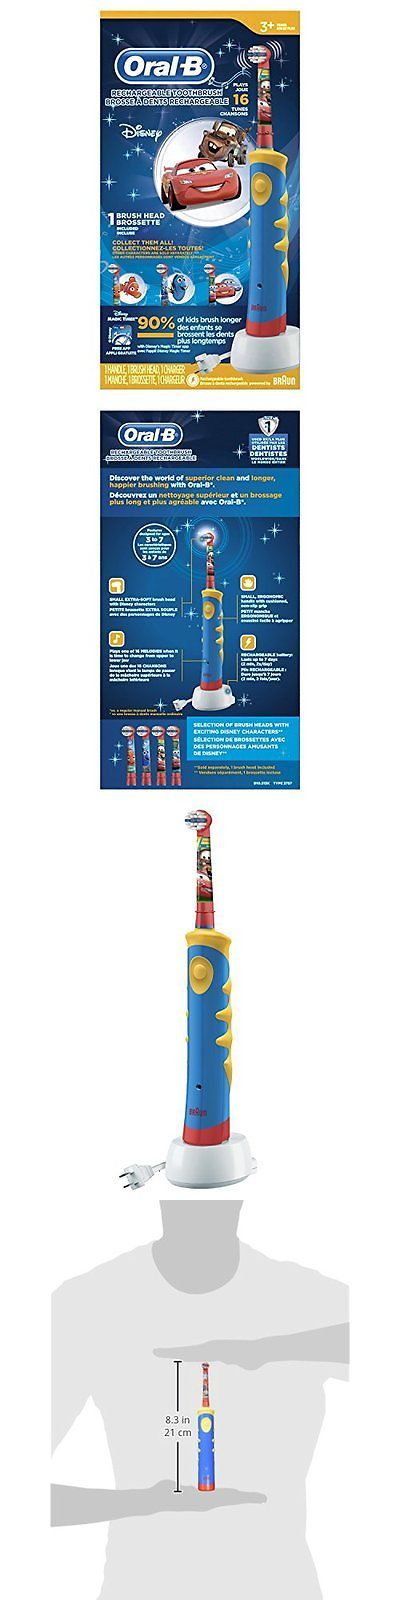 Childrens Oral Care: Electric Toothbrushes Oral B Pro-Health Stages Oral-B Rechargeable Power Brush - BUY IT NOW ONLY: $48.49